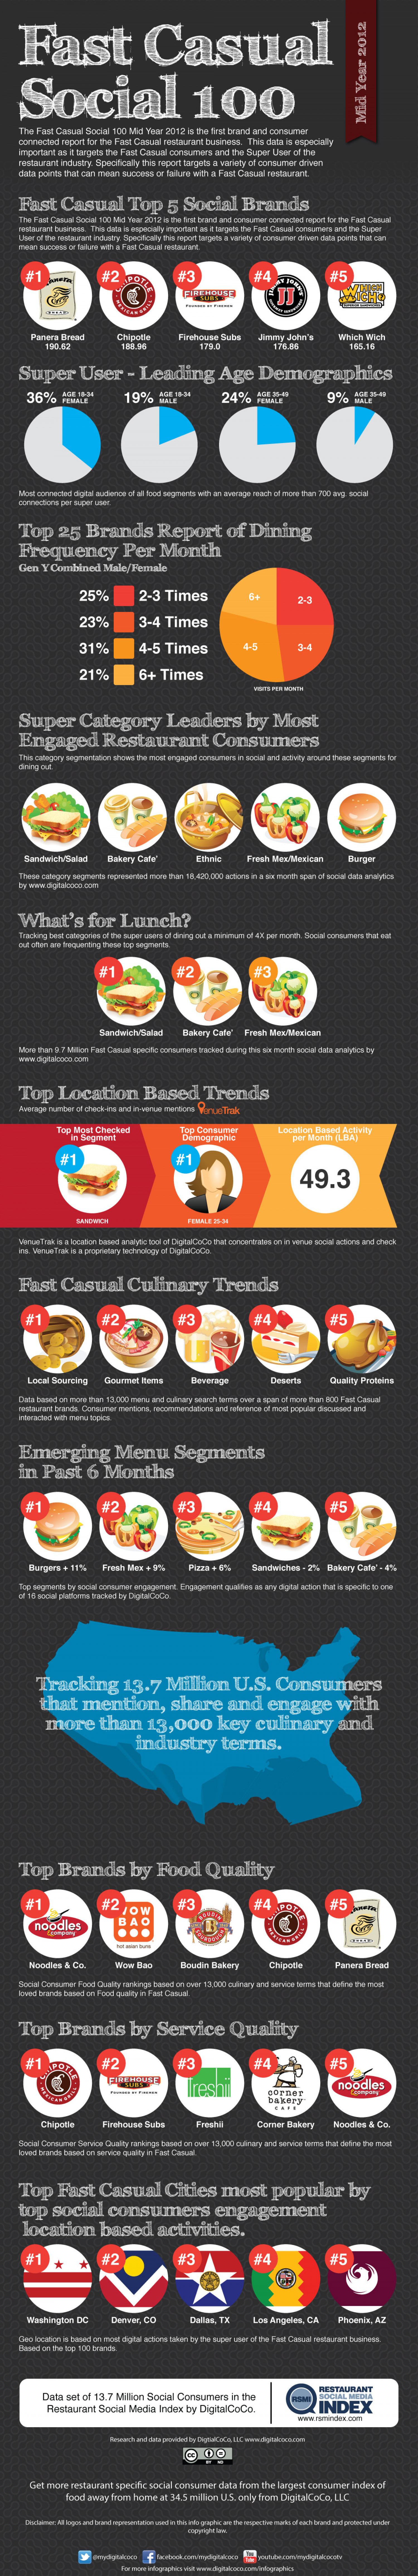 Fast Casual Restaurant Social 100 Infographic